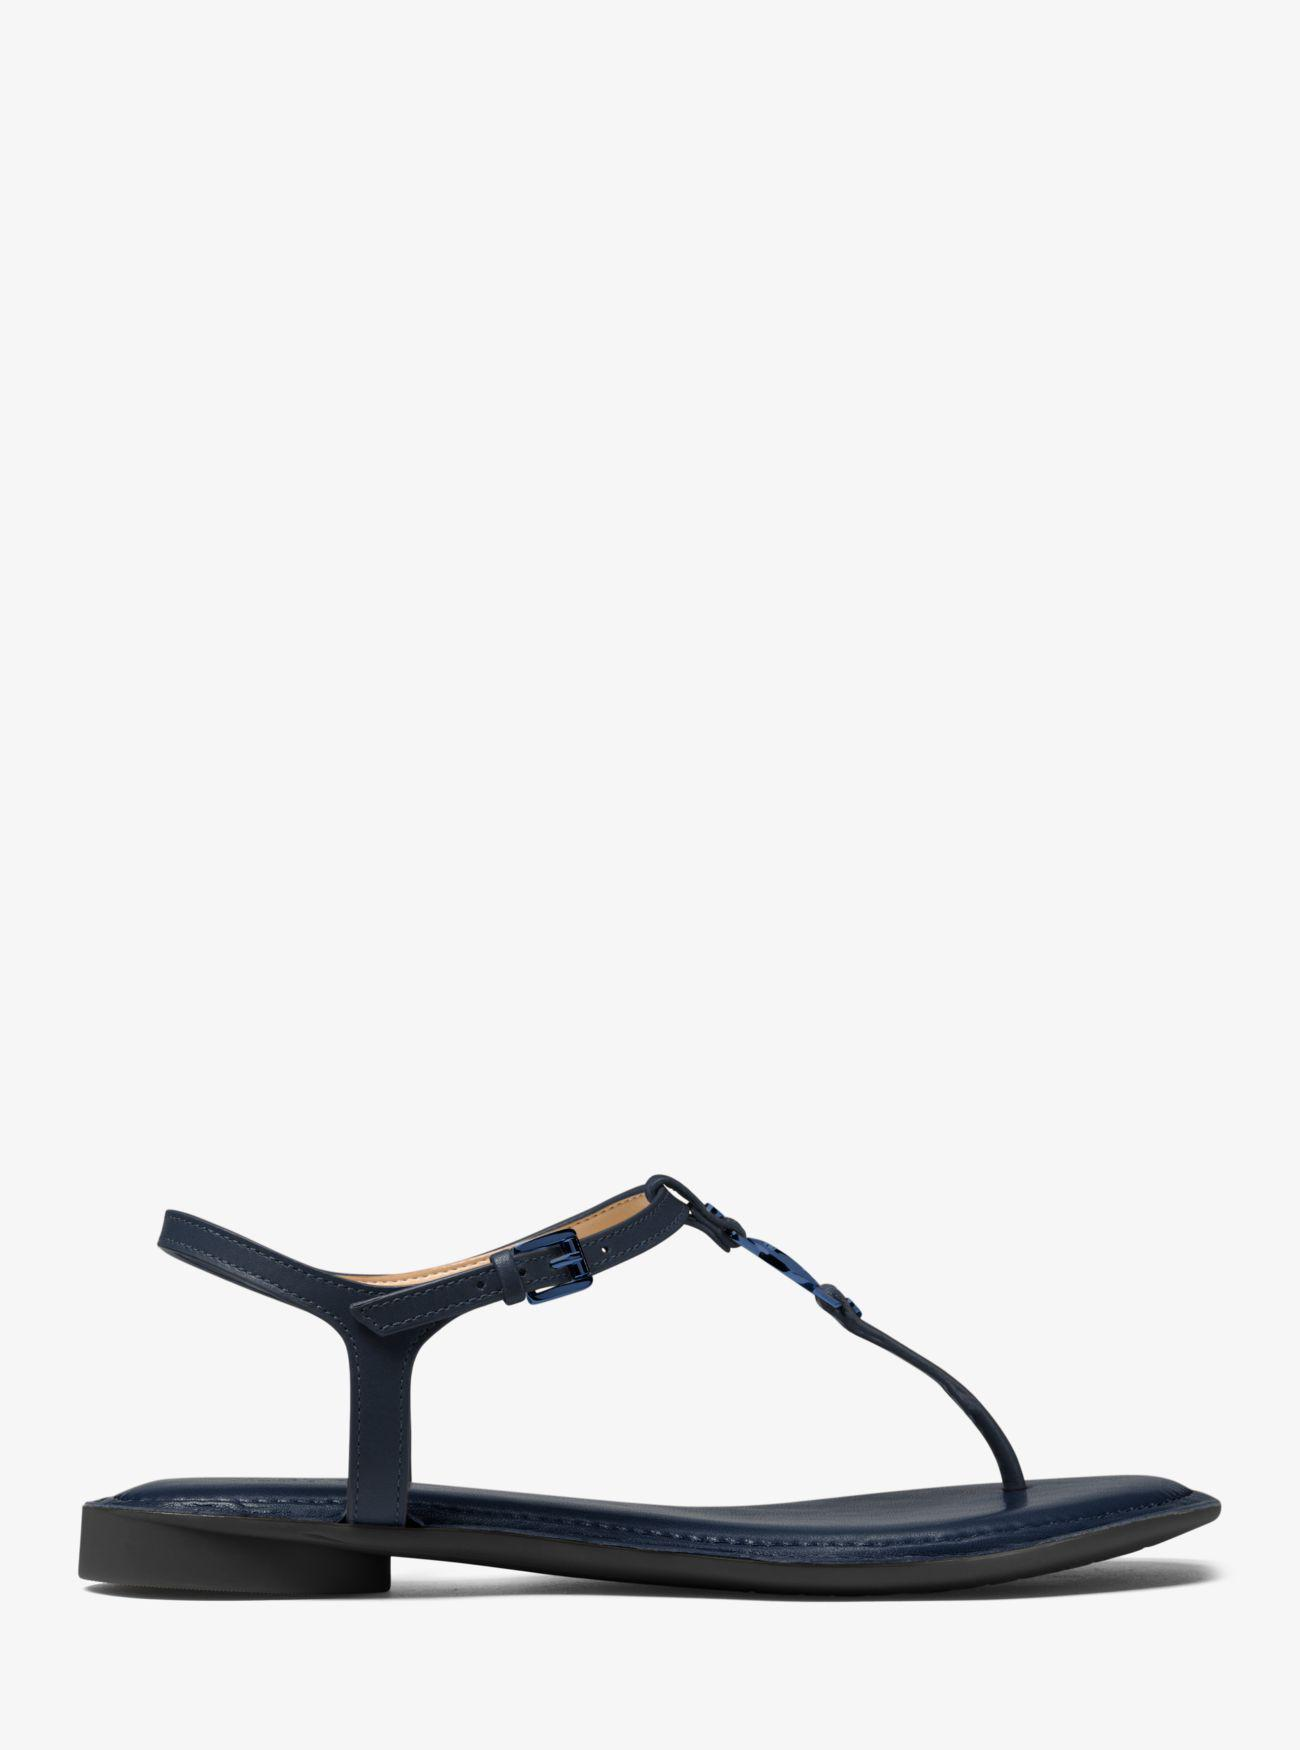 75ab1189231 Michael Kors Bethany Leather Thong - Lyst